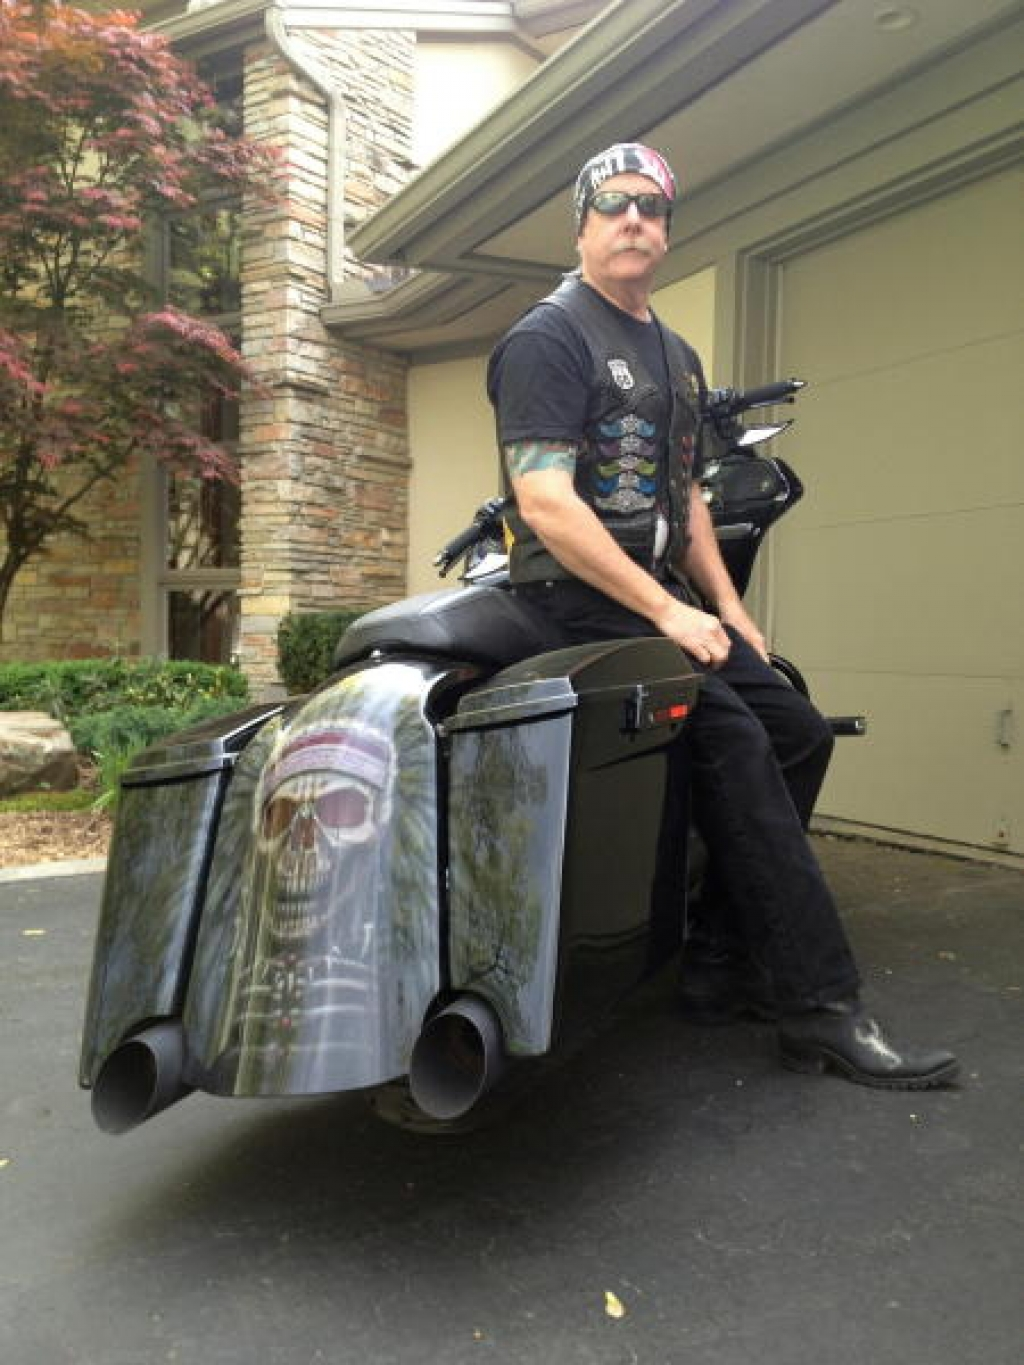 John Moffitt & His 2013 Harley-Davidson Road Glide